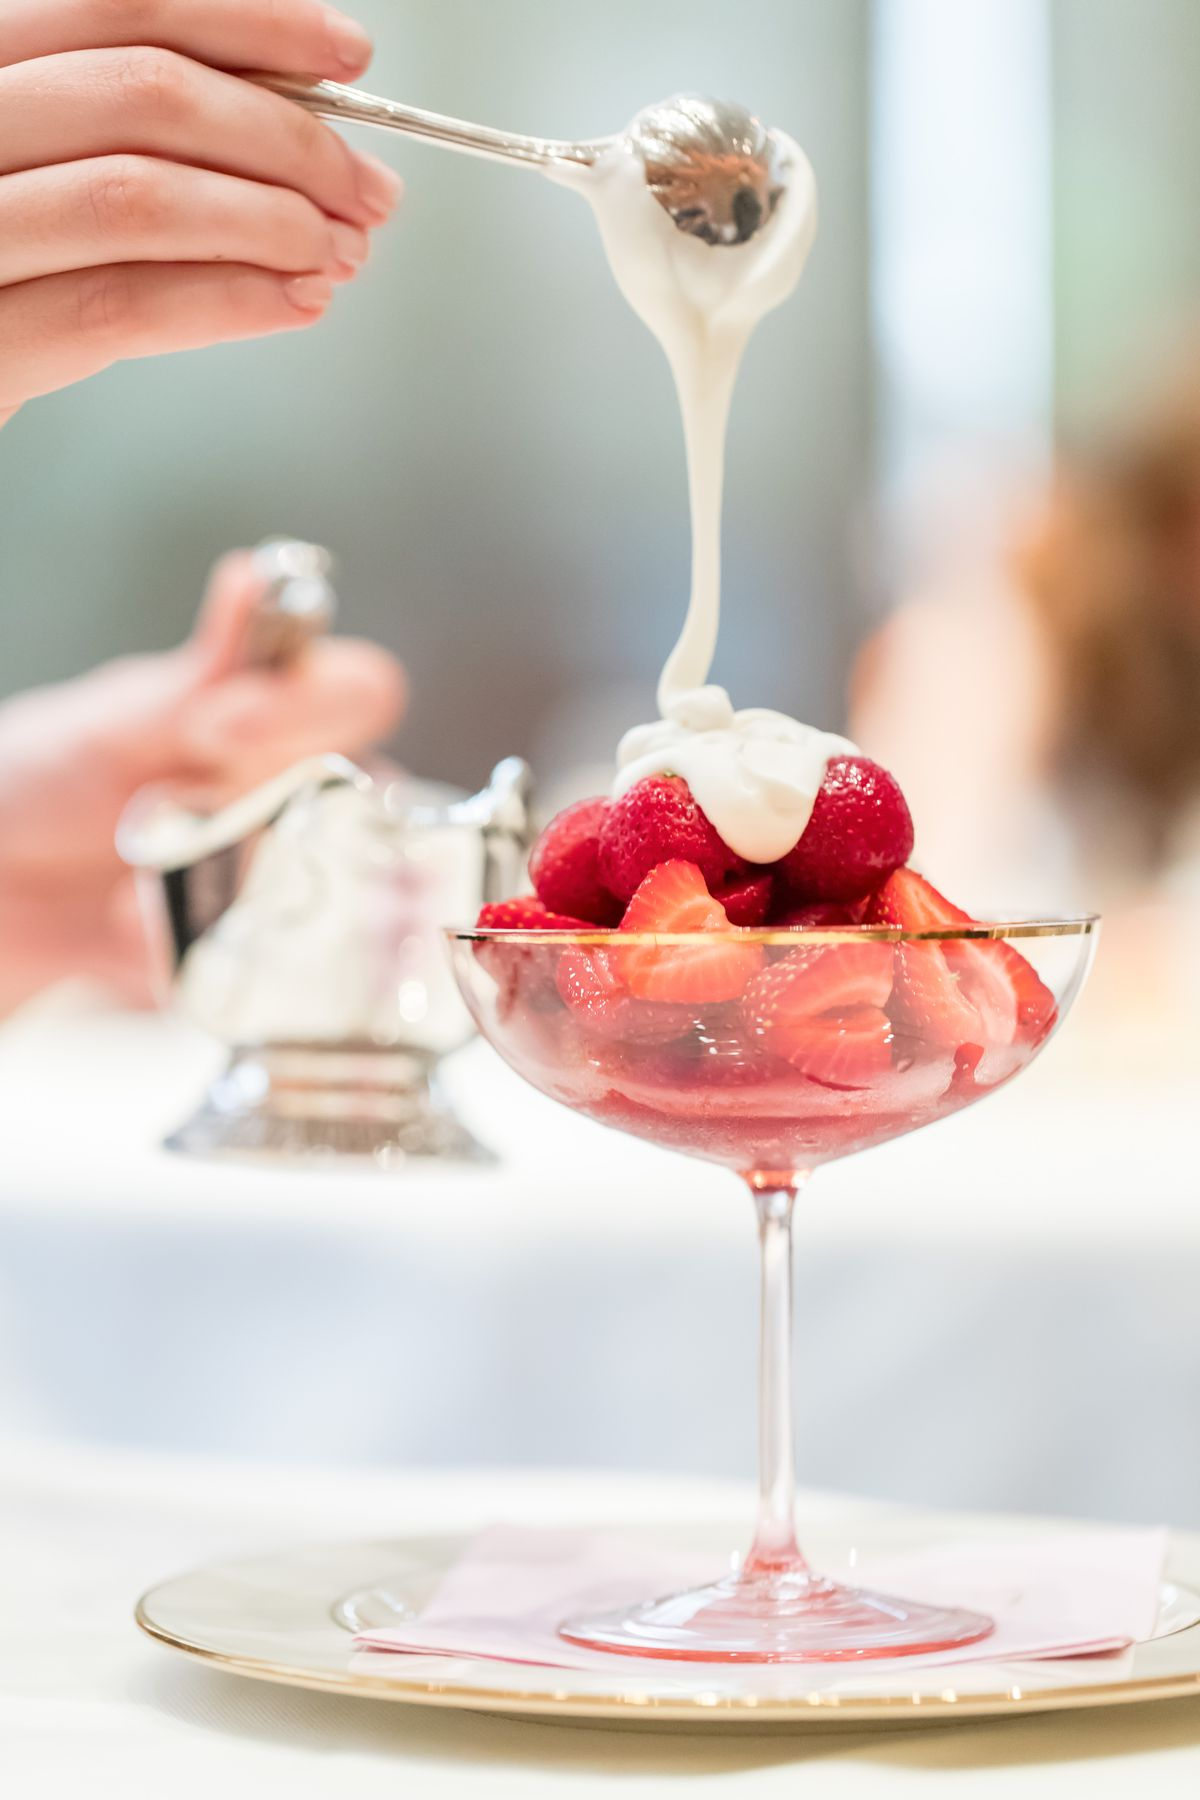 Macerated strawberries with coconut cream